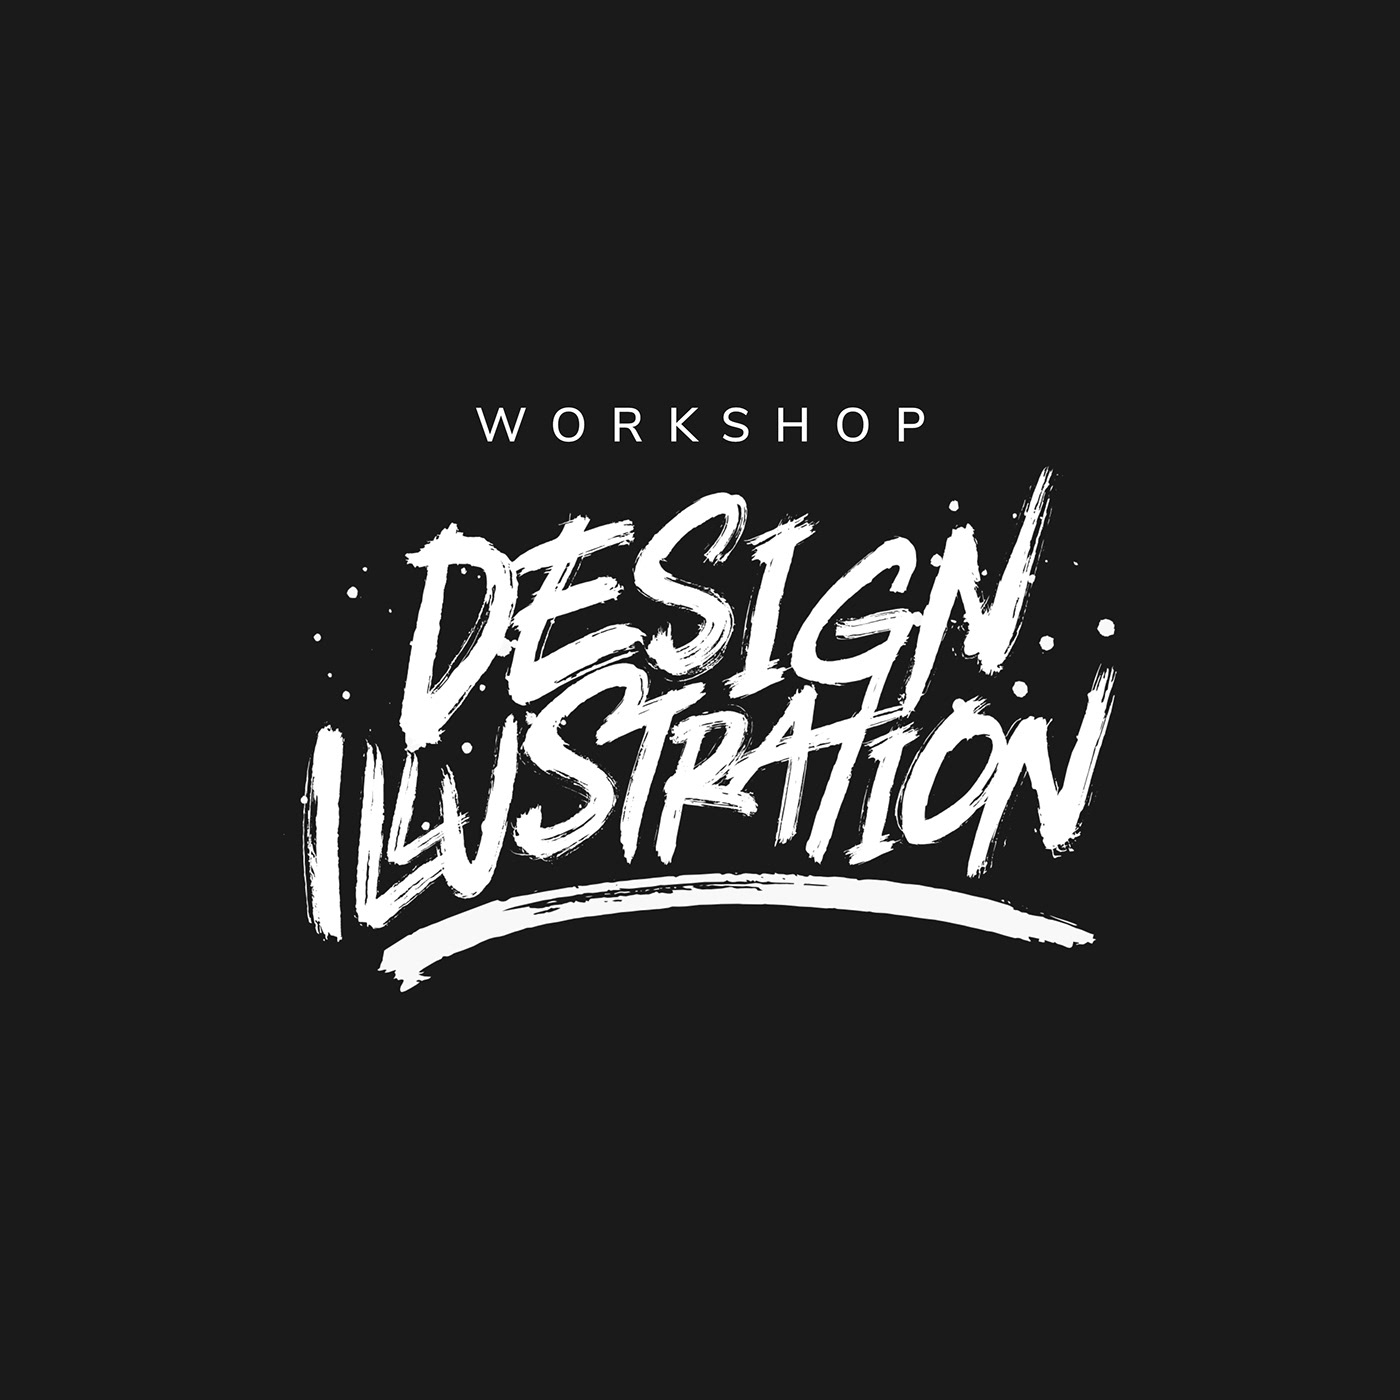 WORKSHOP DESIGN + ILLUSTRATION // Thumbnail